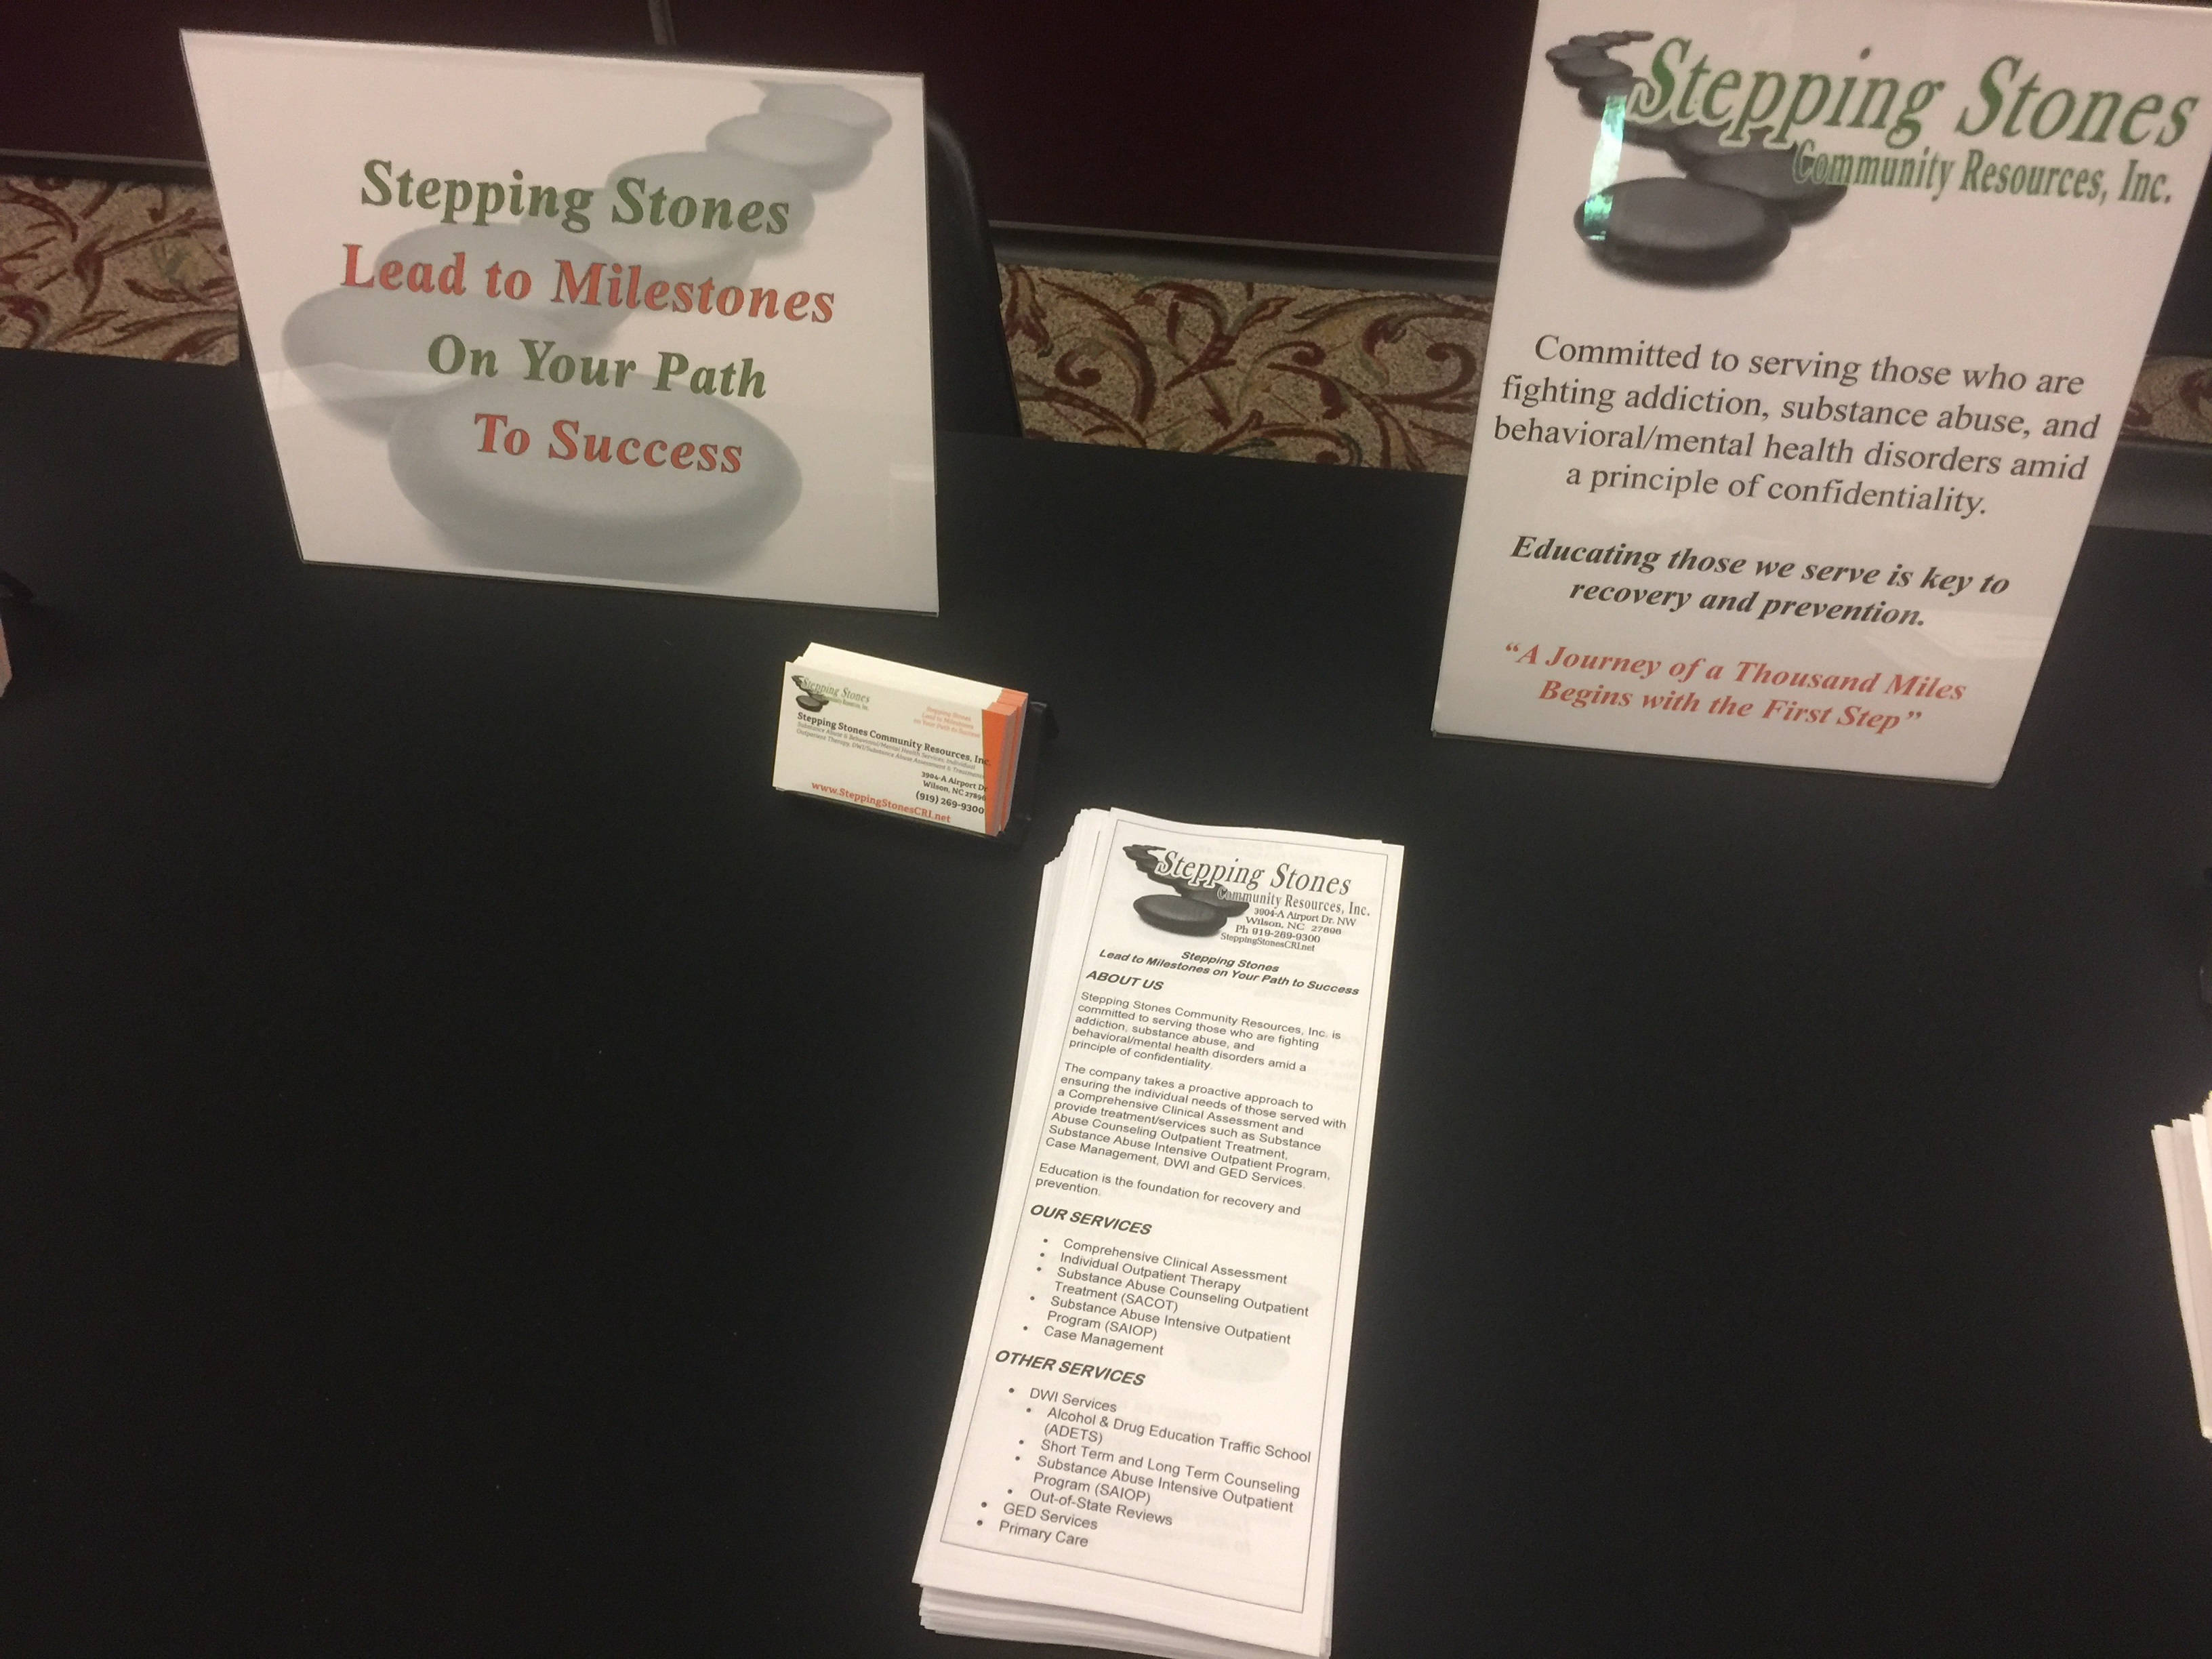 Stepping Stones Attends The Nc Substance Abuse Prevention Conference